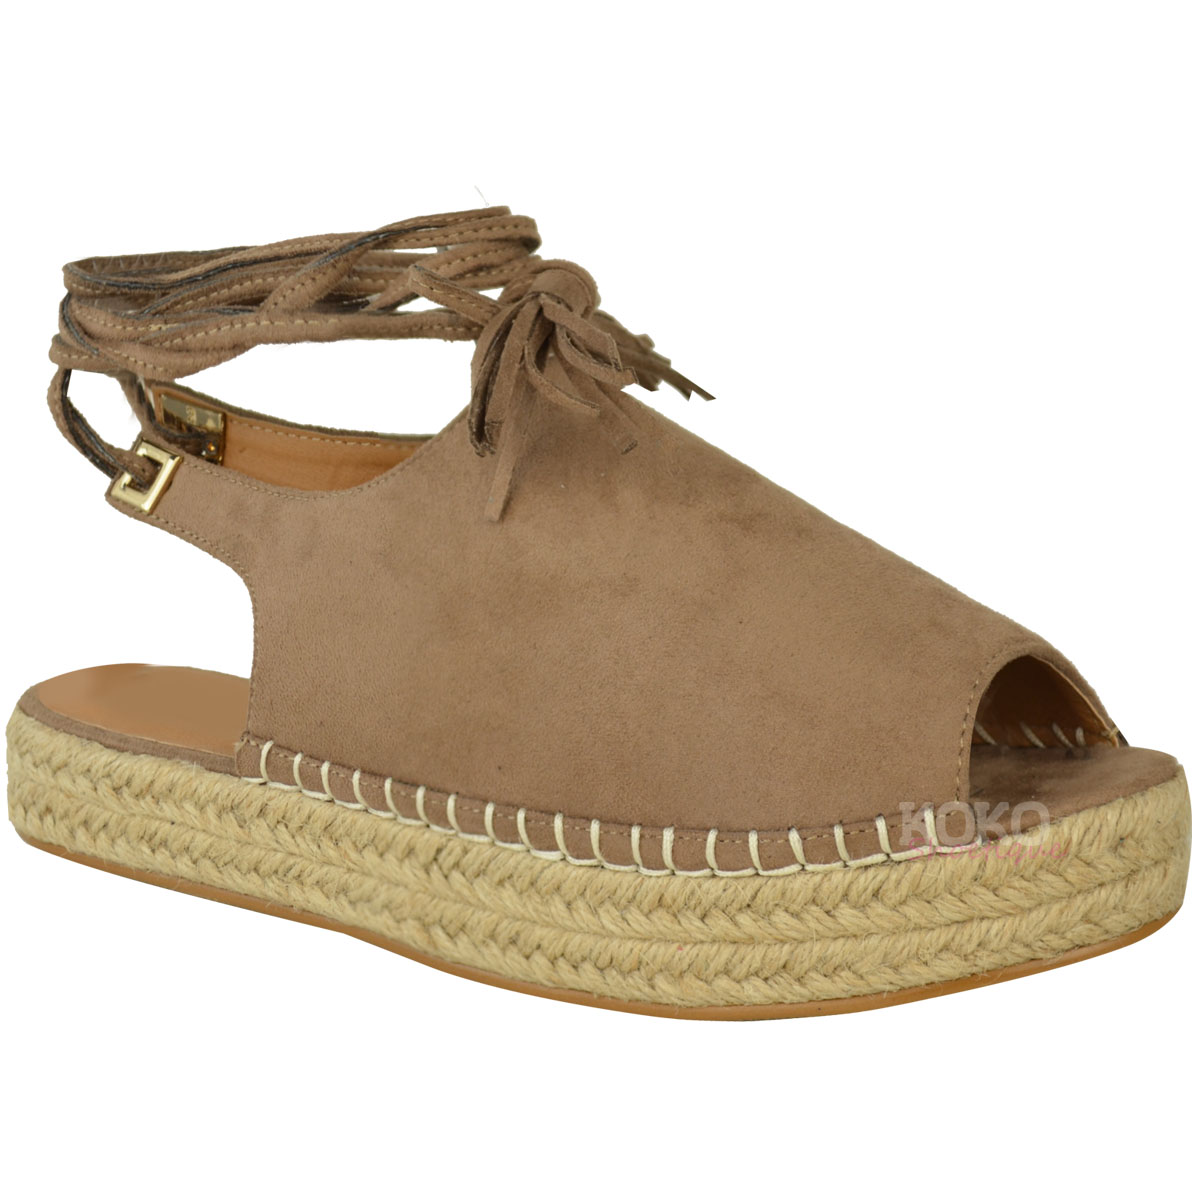 Sam Edelman Espadrille Wedge | Bcbg Shoes Dillards | Espadrilles Tie Up